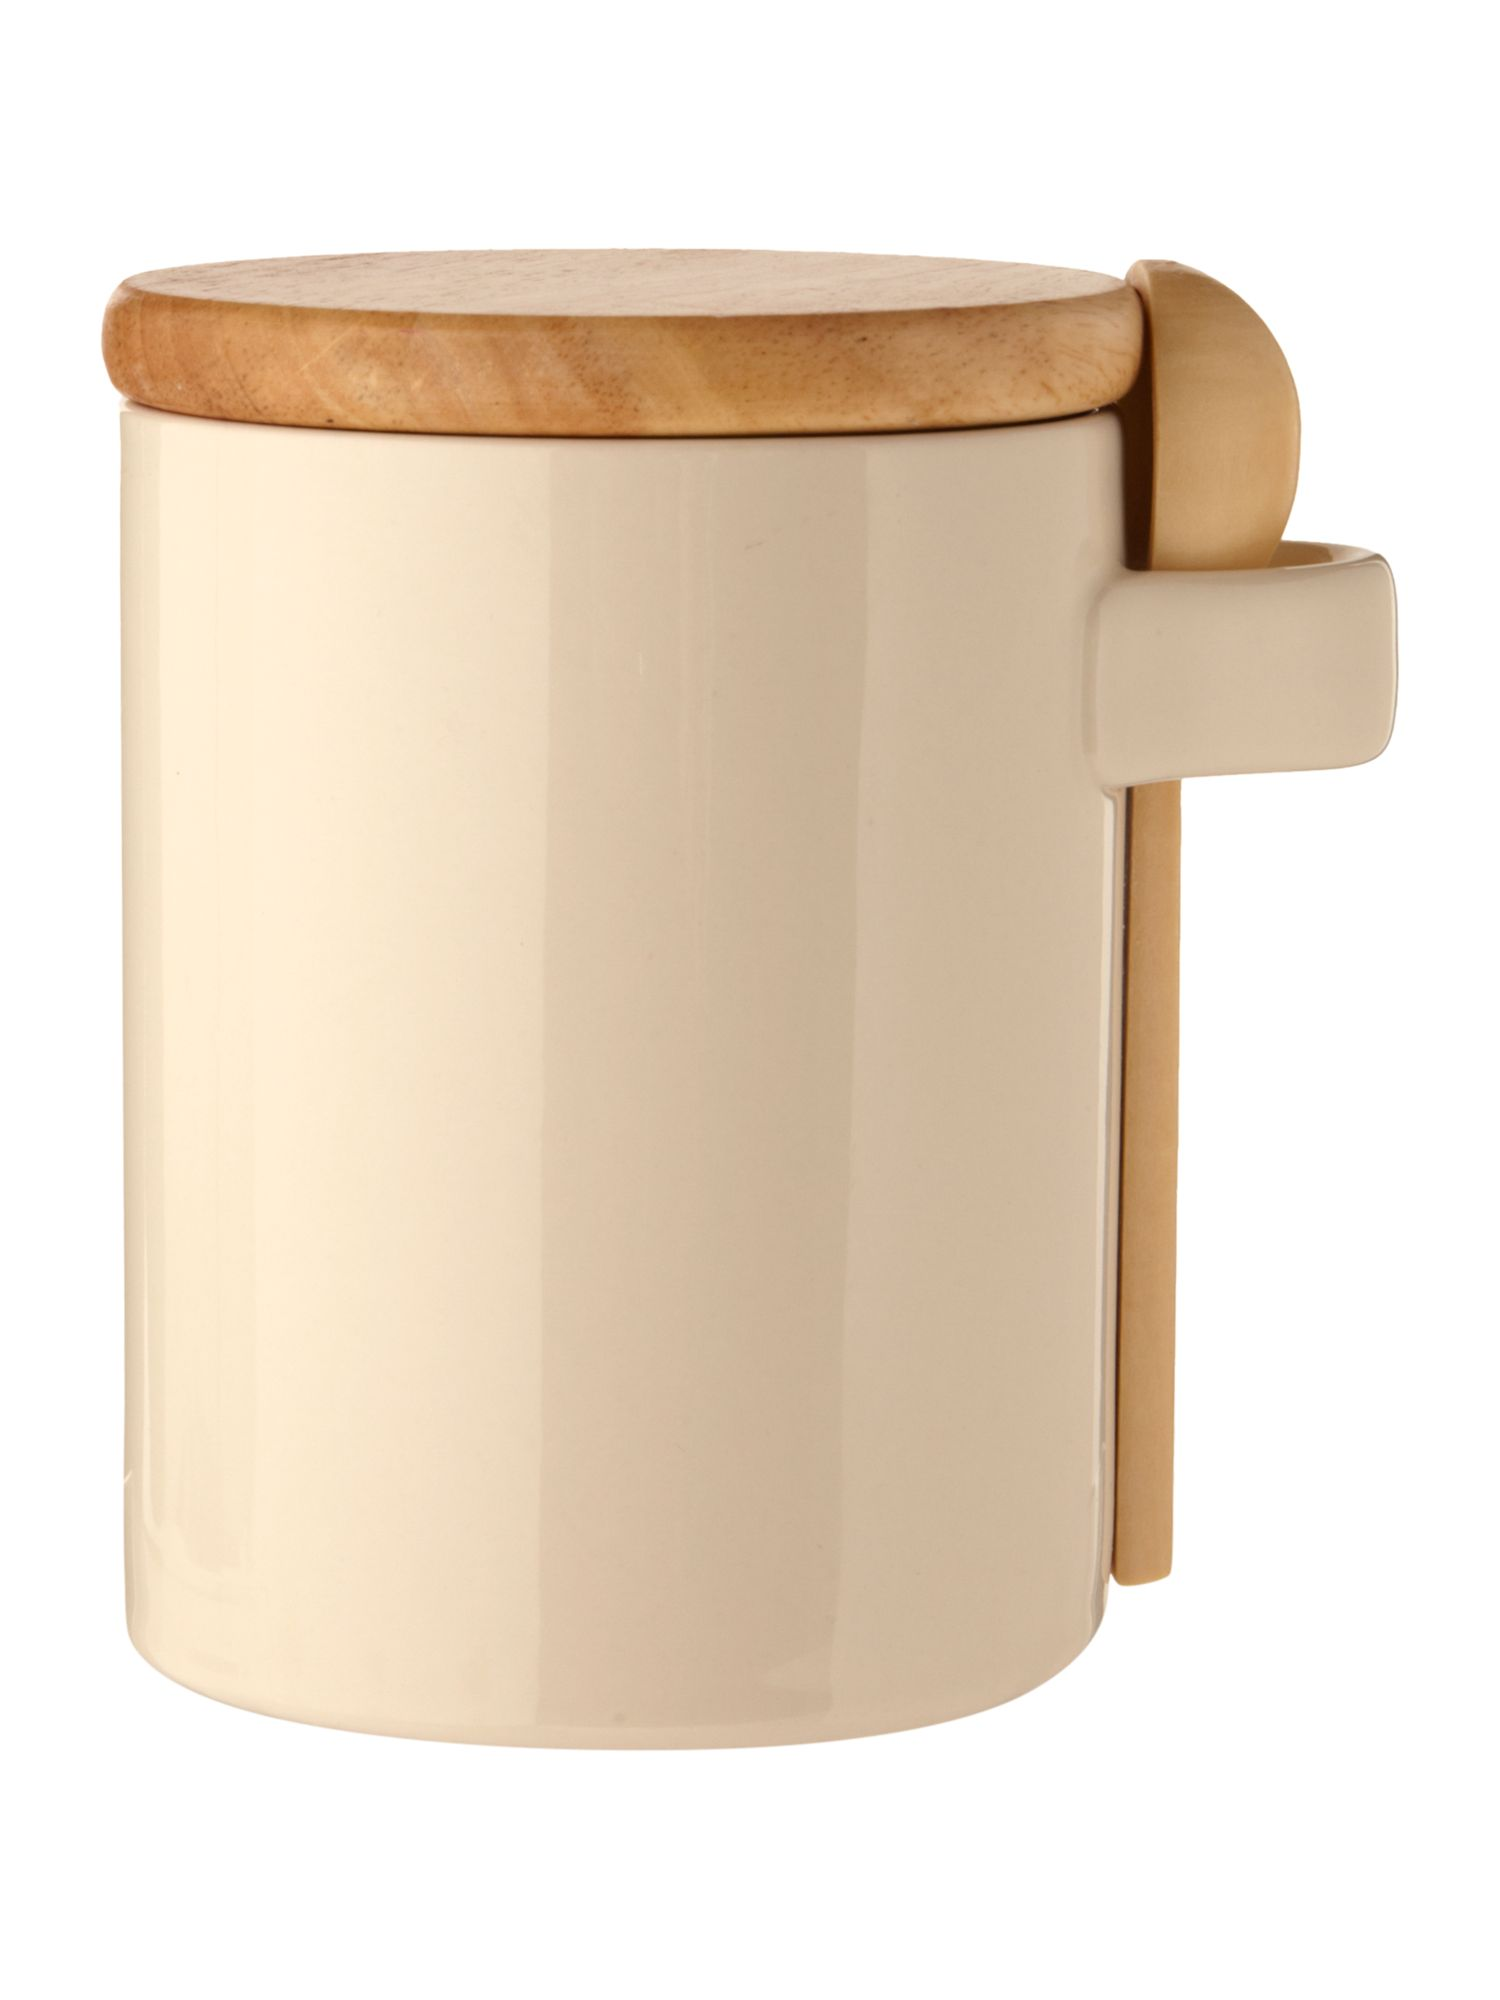 Pastel beige storage jar with spoon